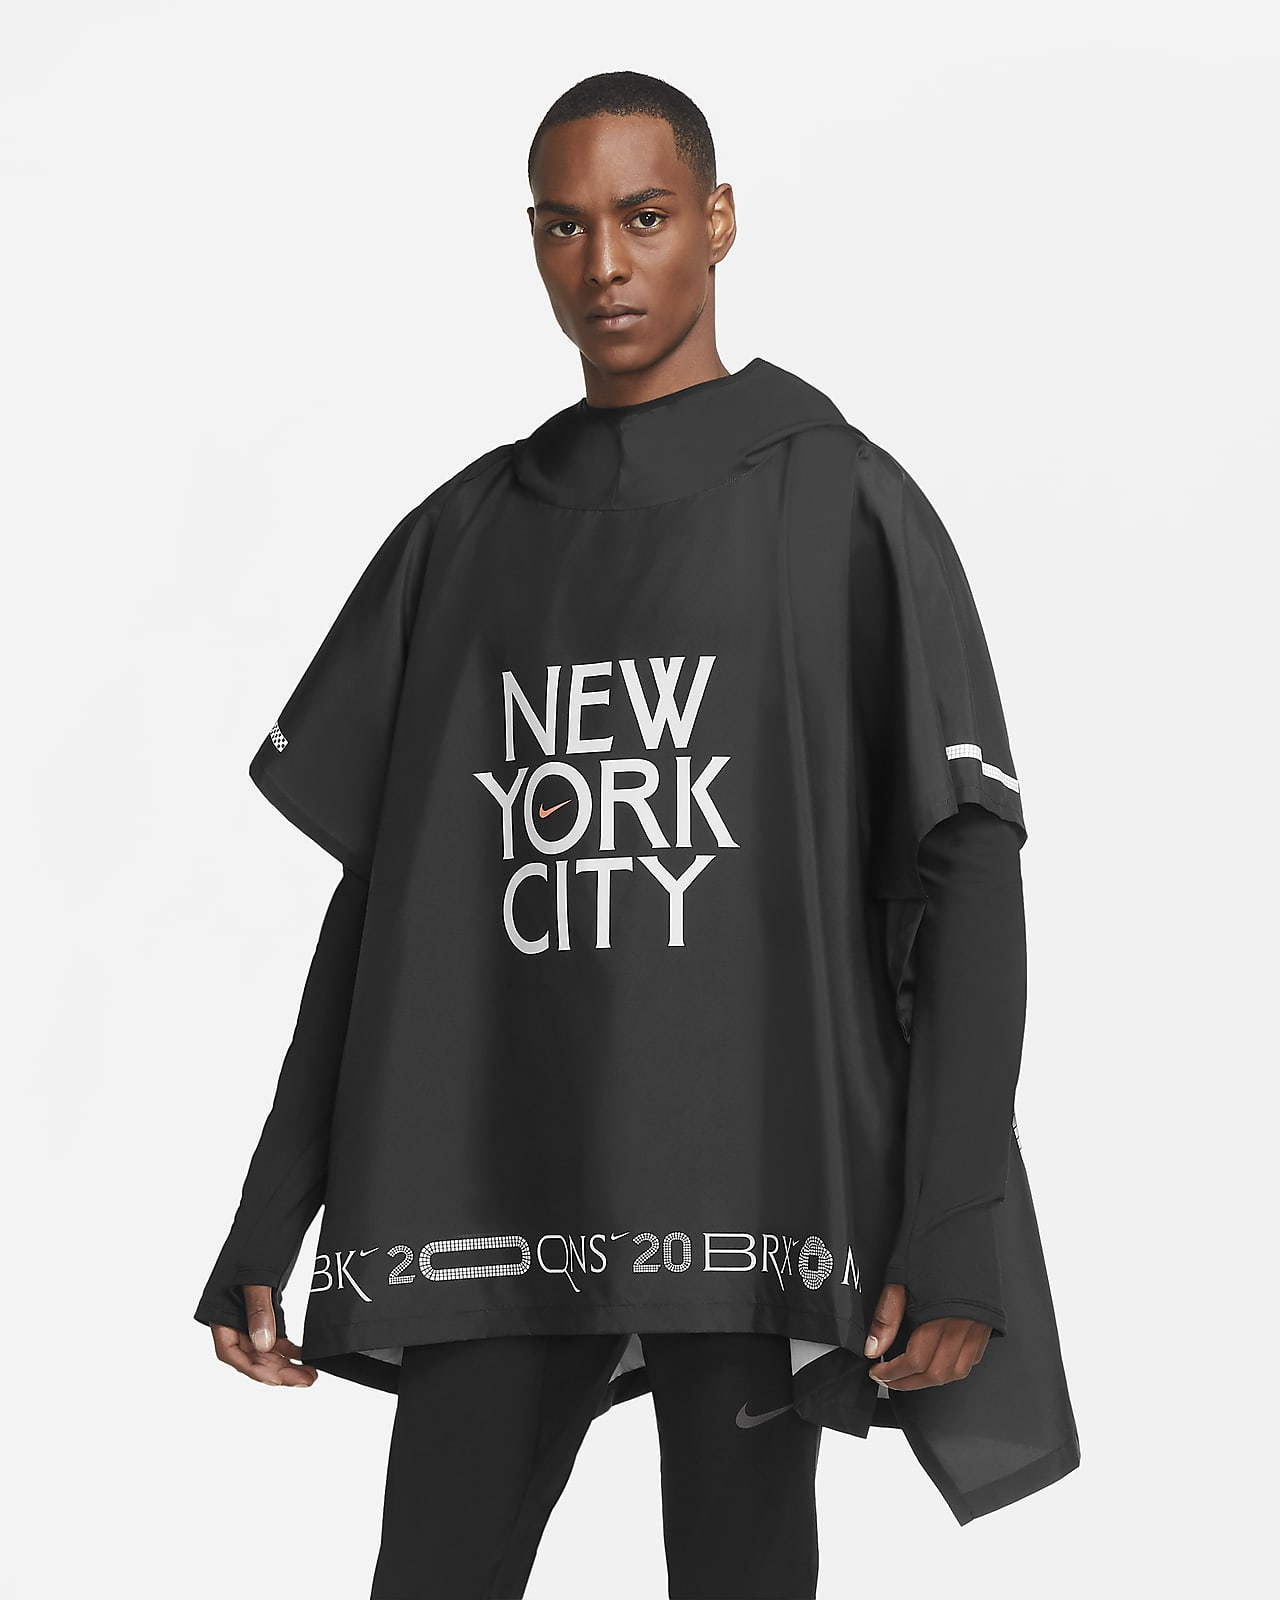 Nike Marathoner NYC Running Jacket